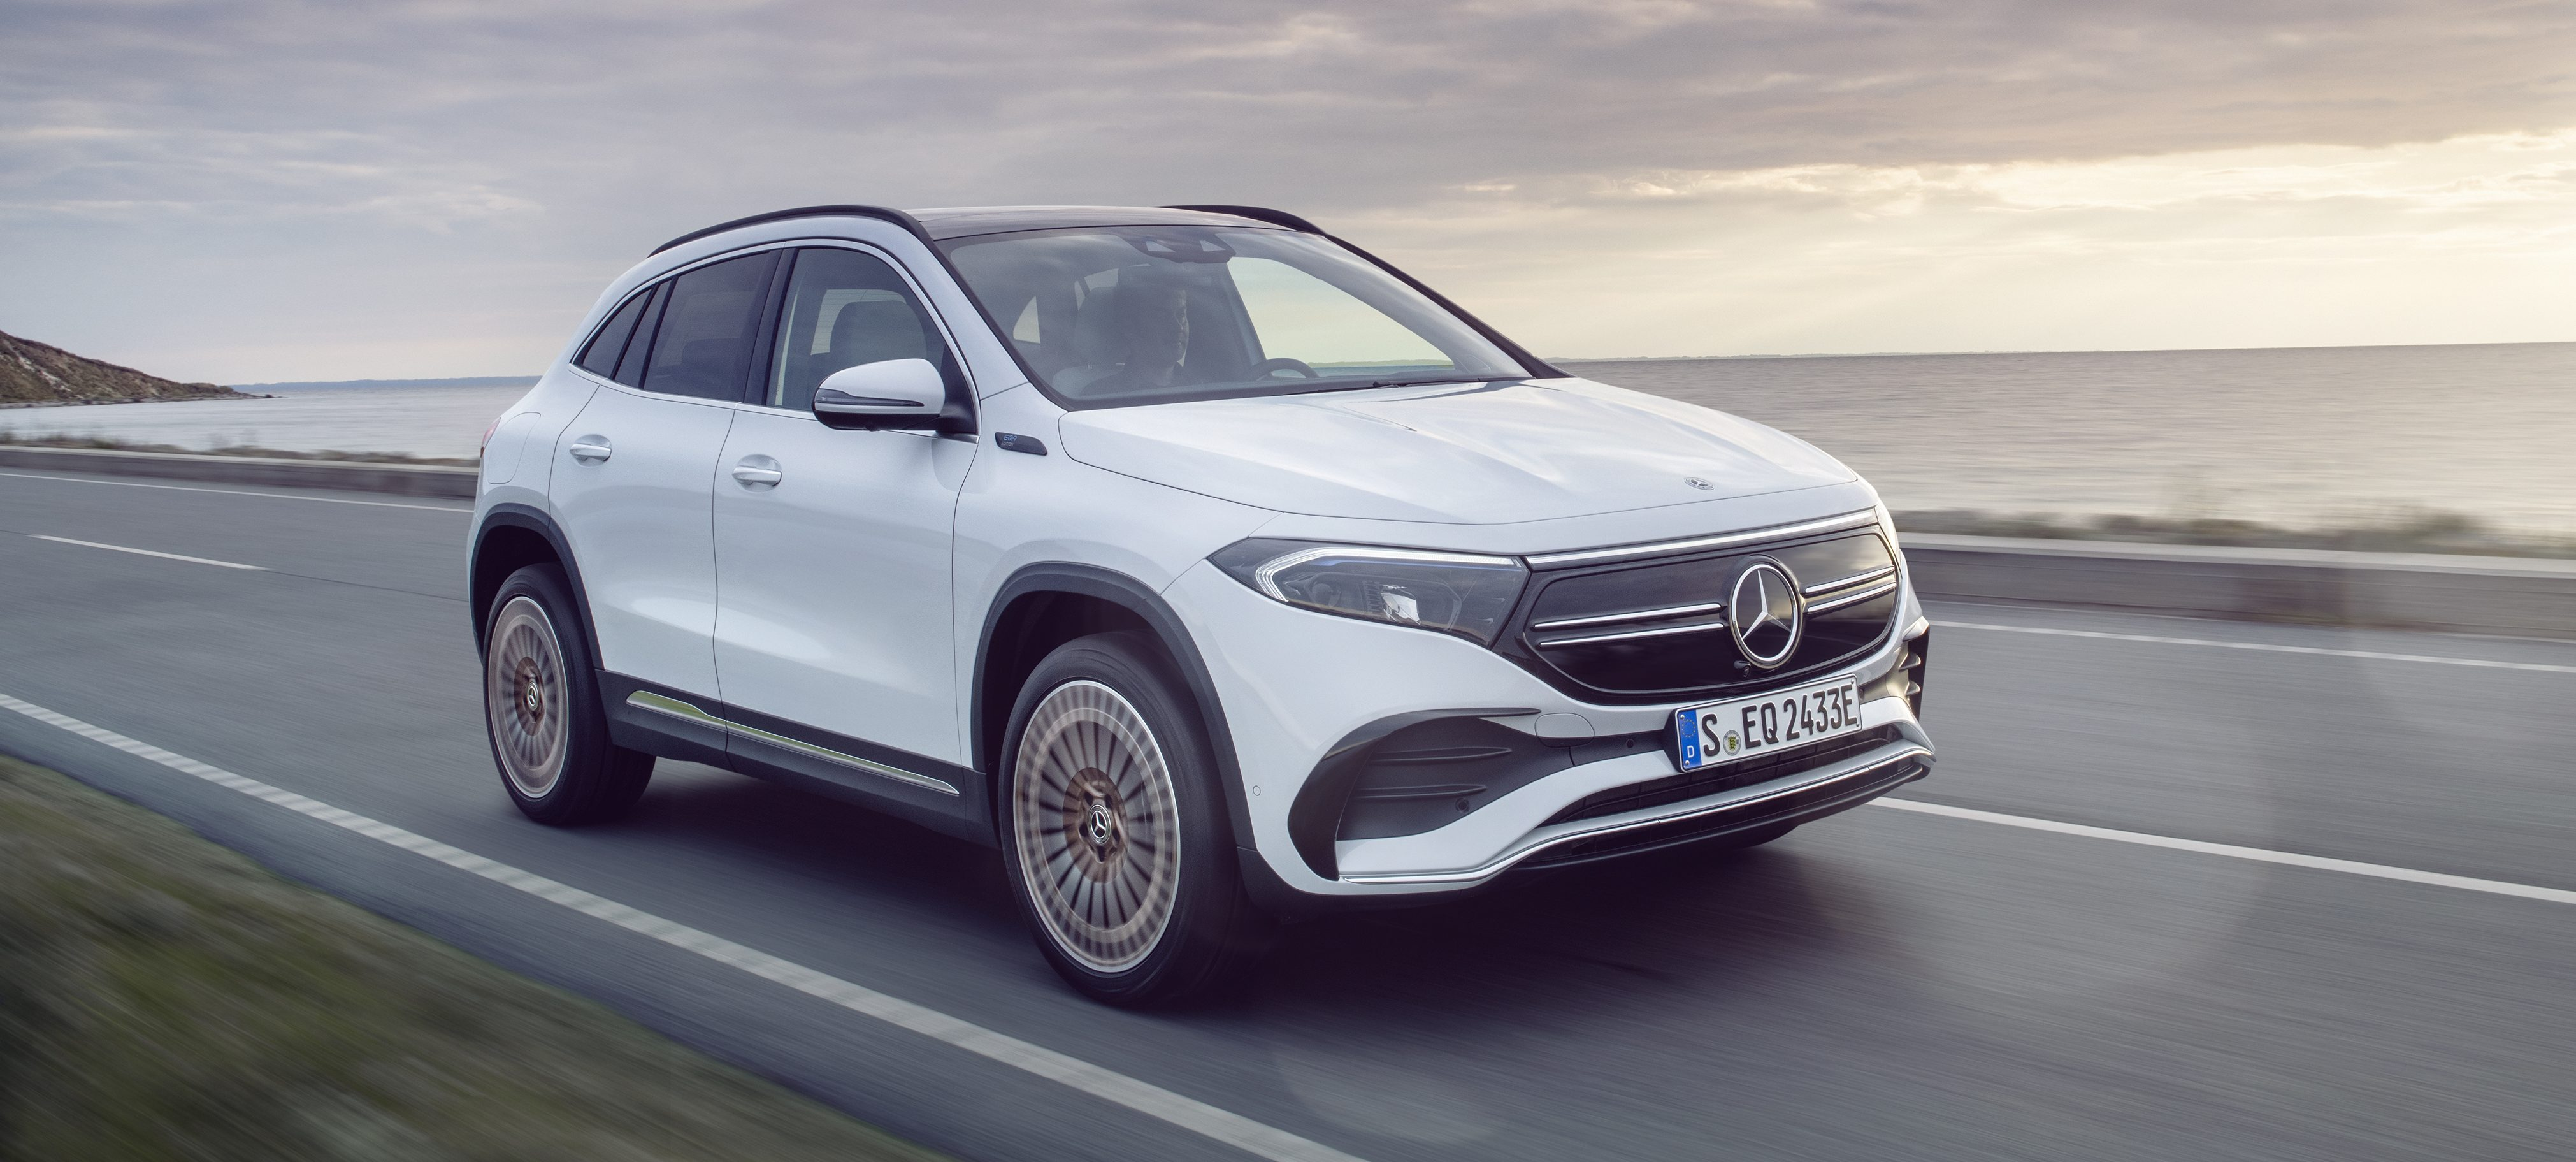 Mercedes Benz Unveils Eqa Electric Suv With 265 Miles Of Range And 46 000 Price Electrek